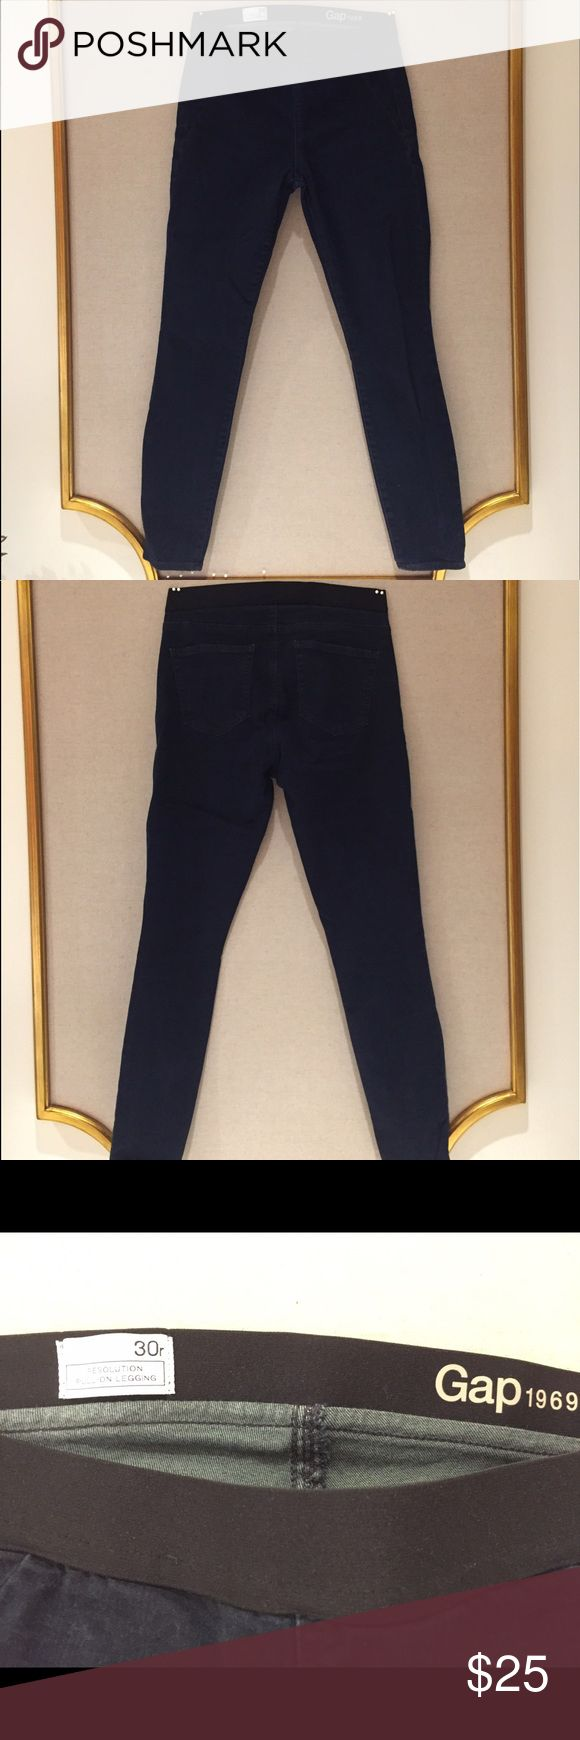 Gap Women's Jegging Pants *worn once* This comfortable yet stylish Gap Women's Jegging Pants is every thing a women could want in a pair of pants! With these practically new pants you could practically do the splits in them all while still rocking your whole outfit! GAP Pants Straight Leg